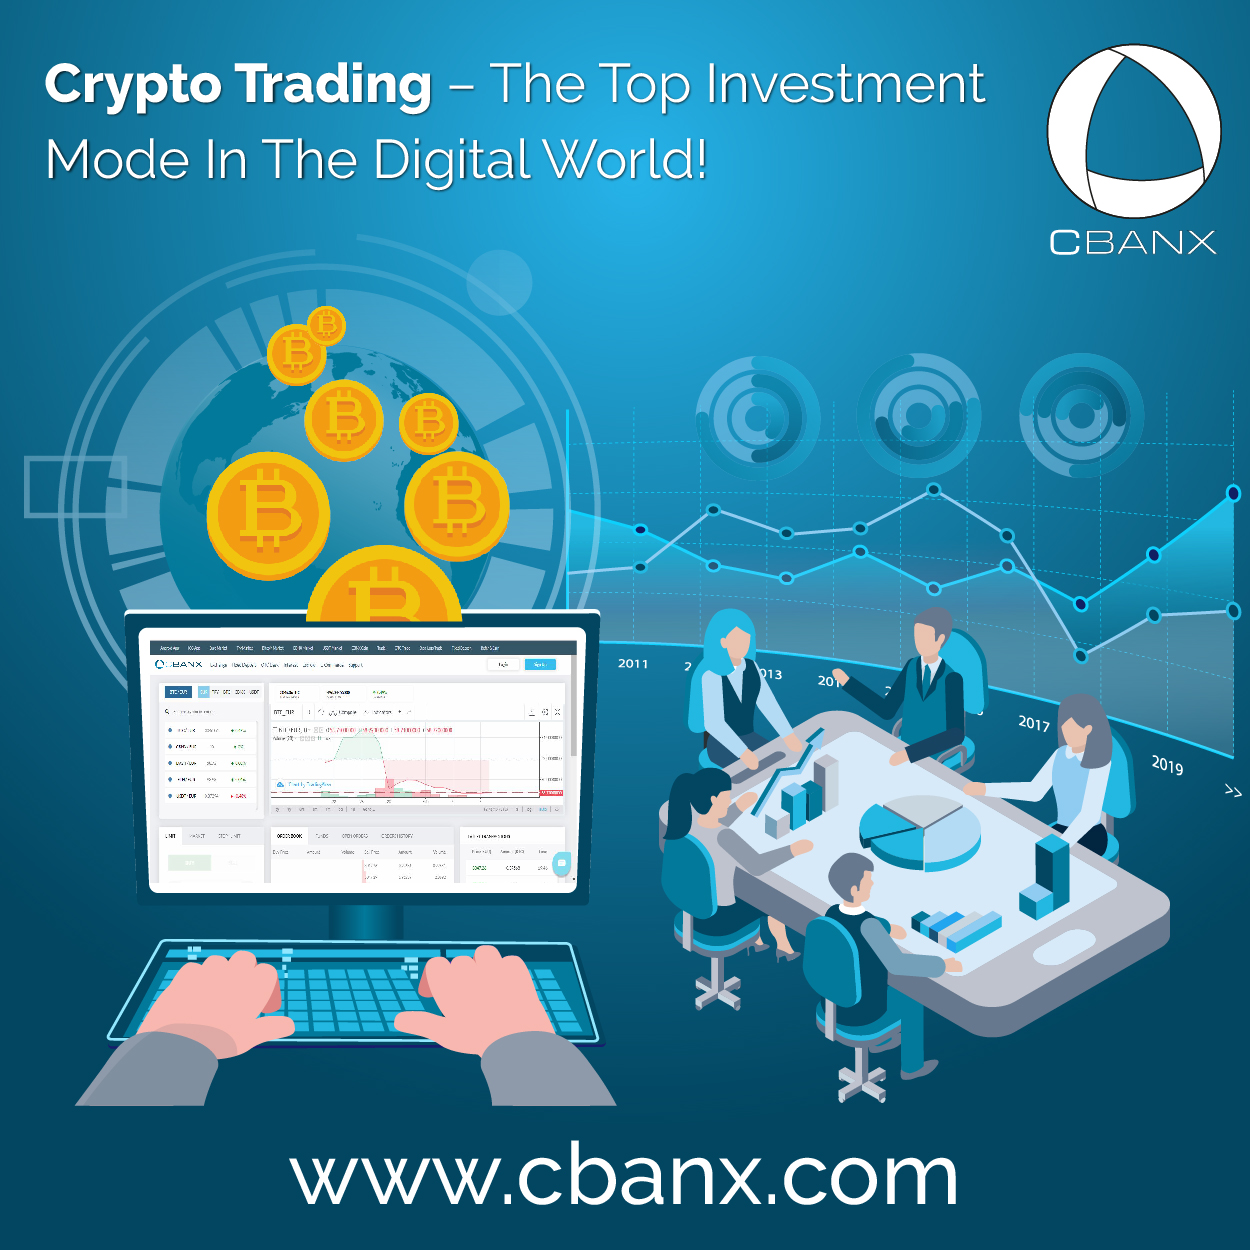 Crypto Trading – The Top Investment Mode In The Digital World!